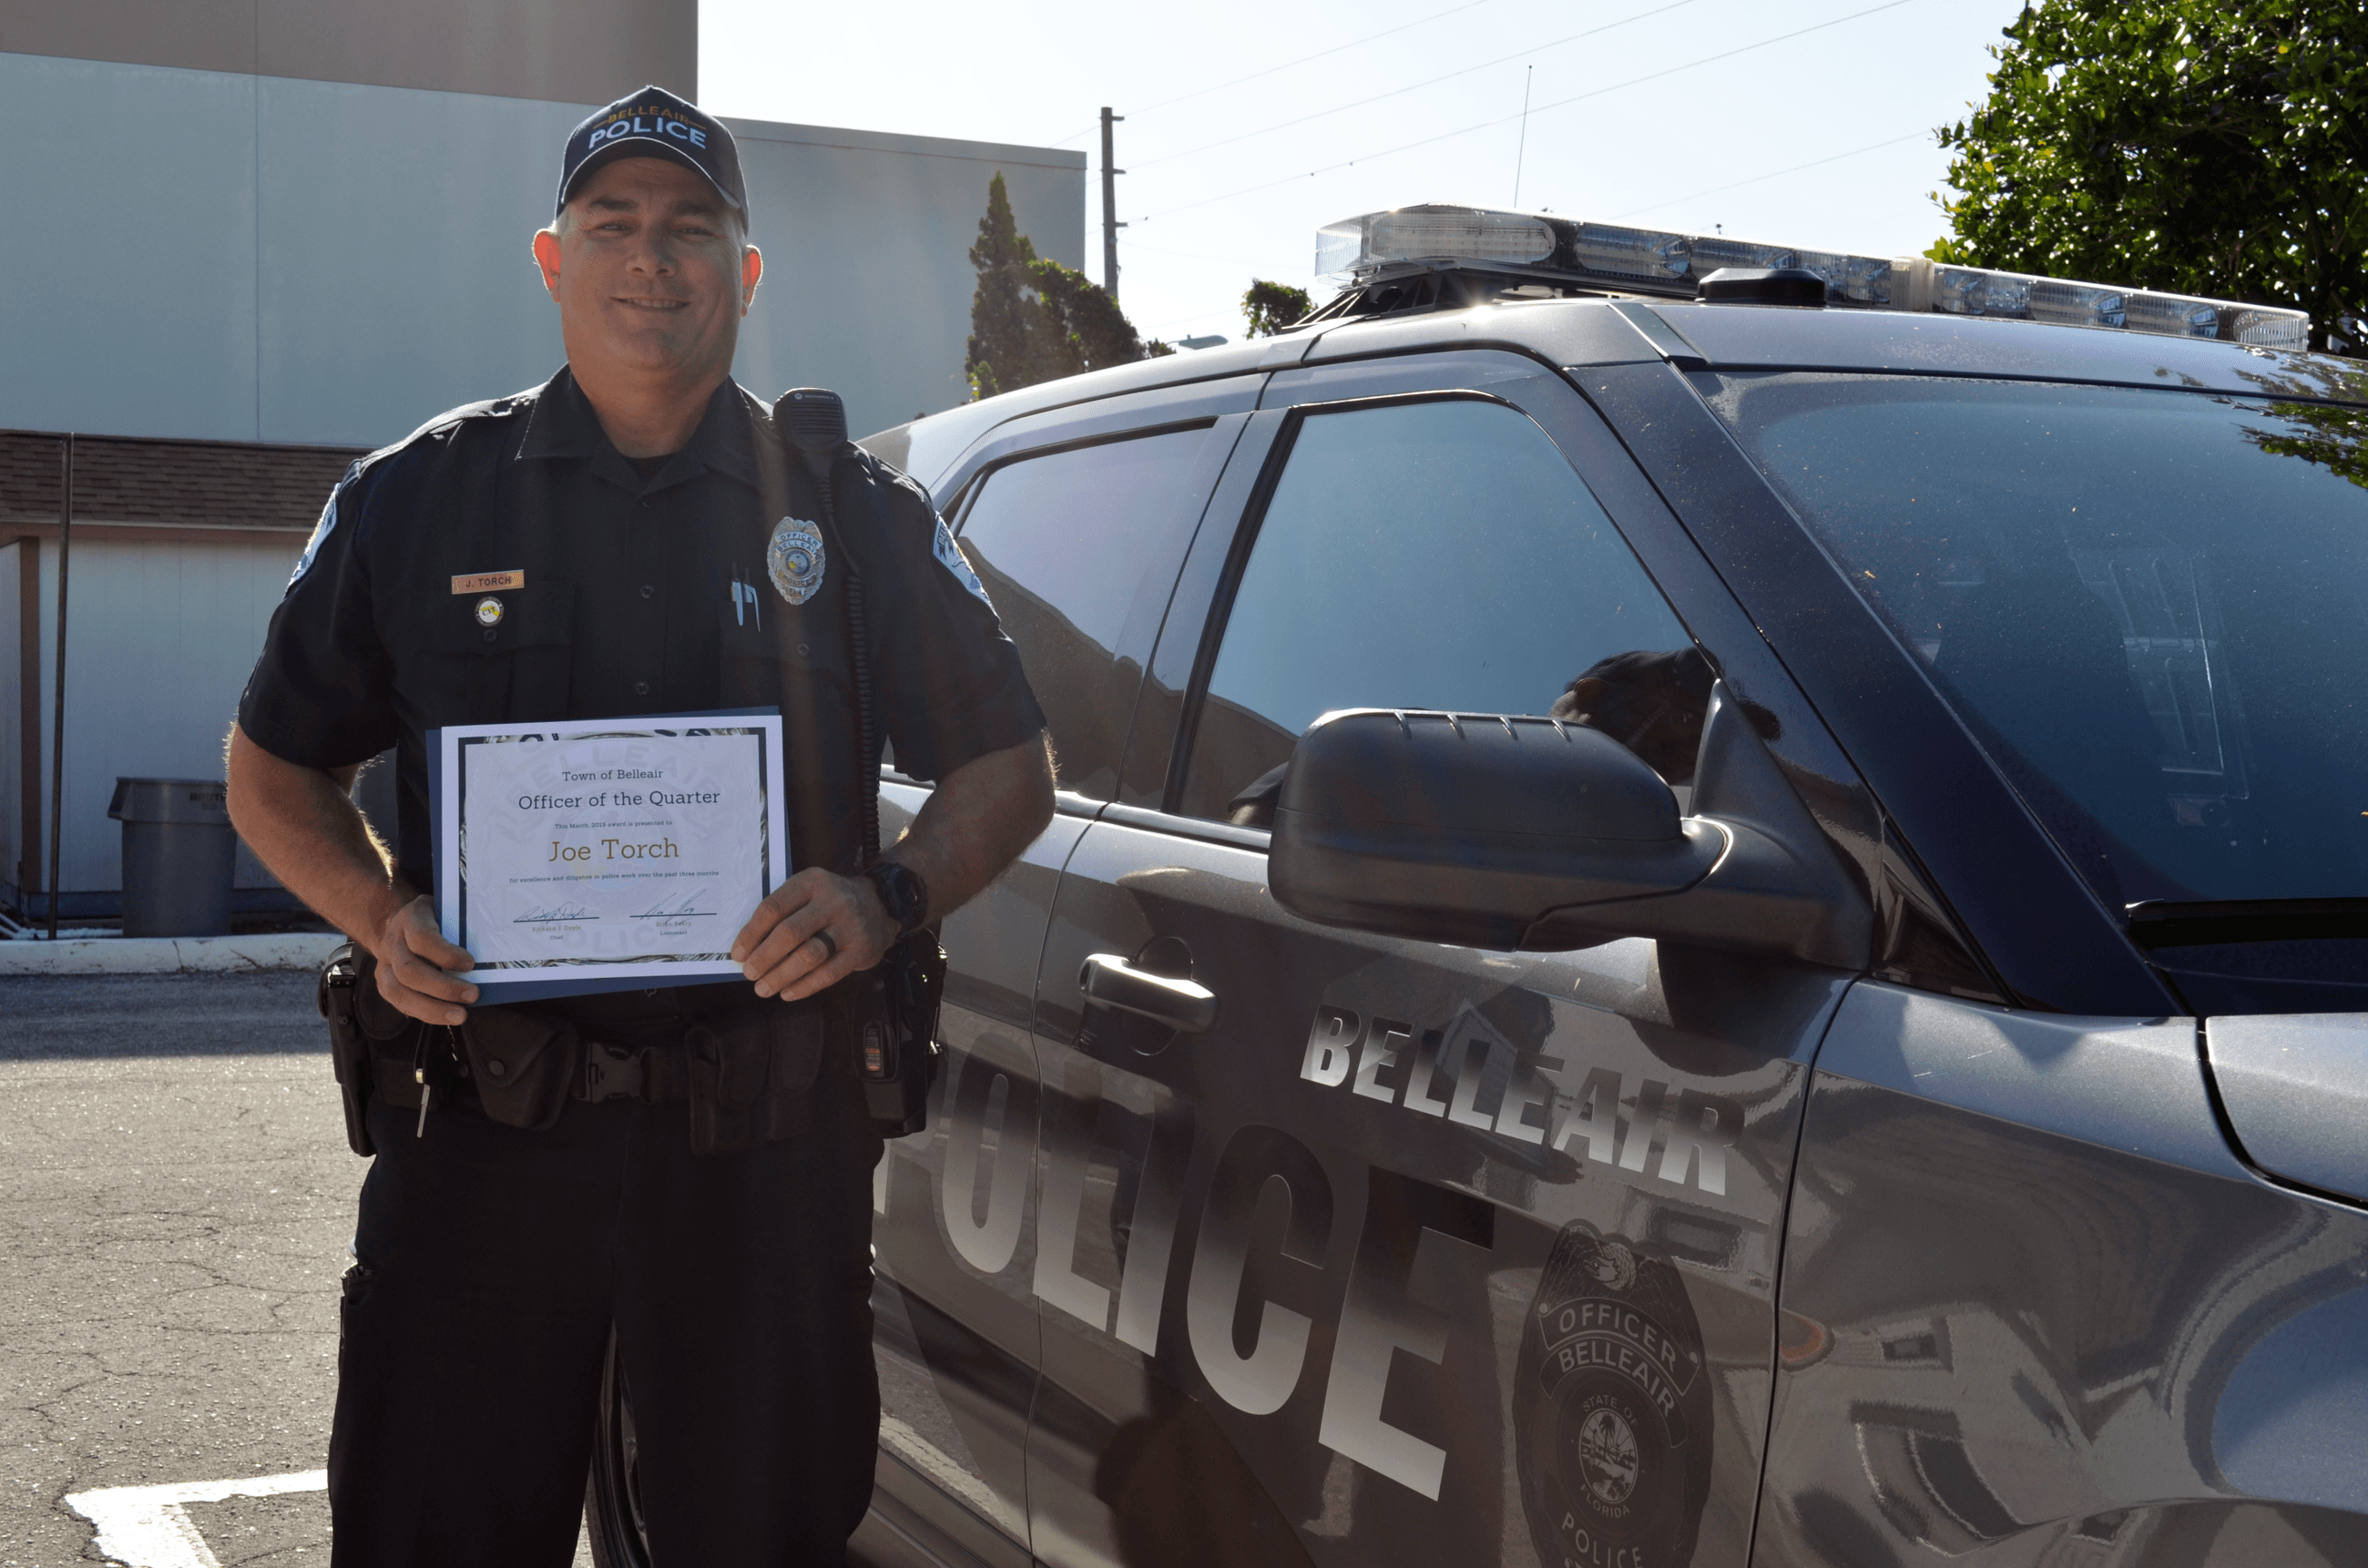 Officer Torch smiles in front of a patrol car with a certificate honoring him as officer of the quar